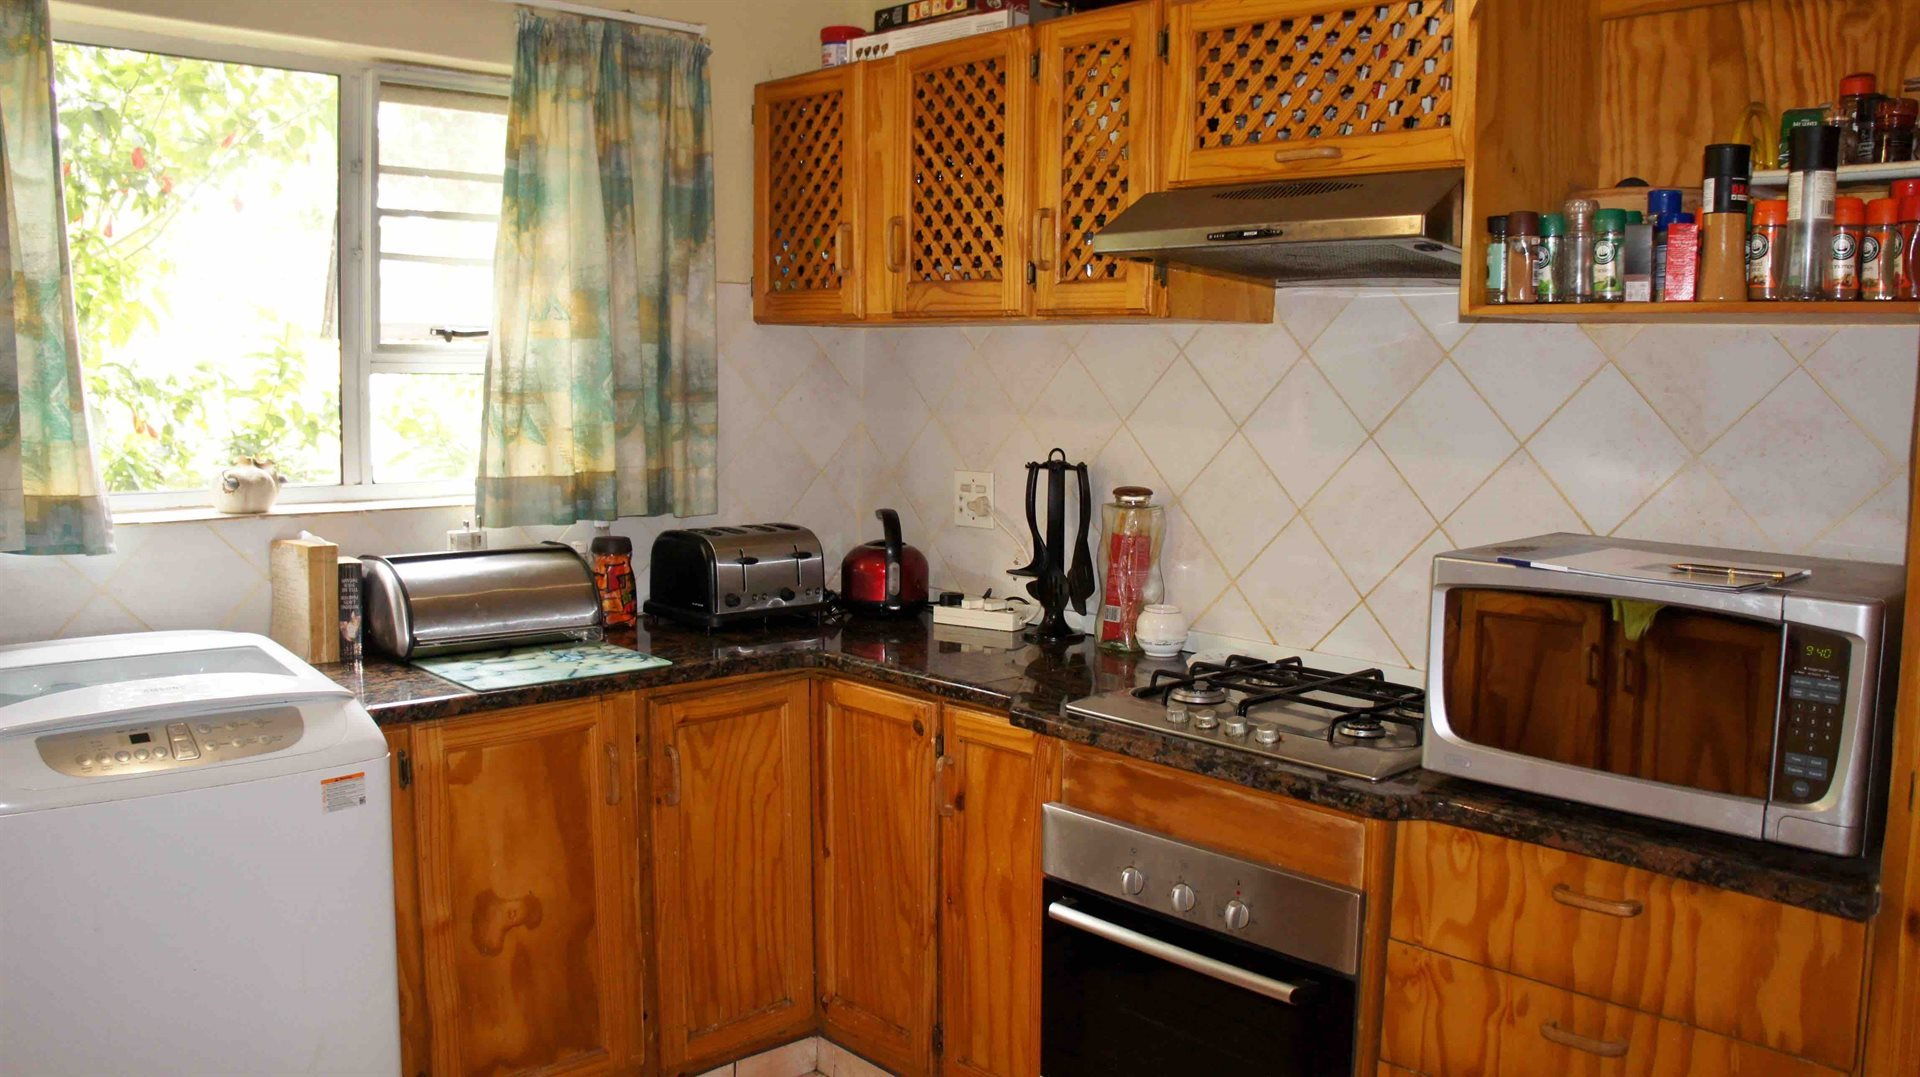 Meer En See property for sale. Ref No: 13544402. Picture no 17